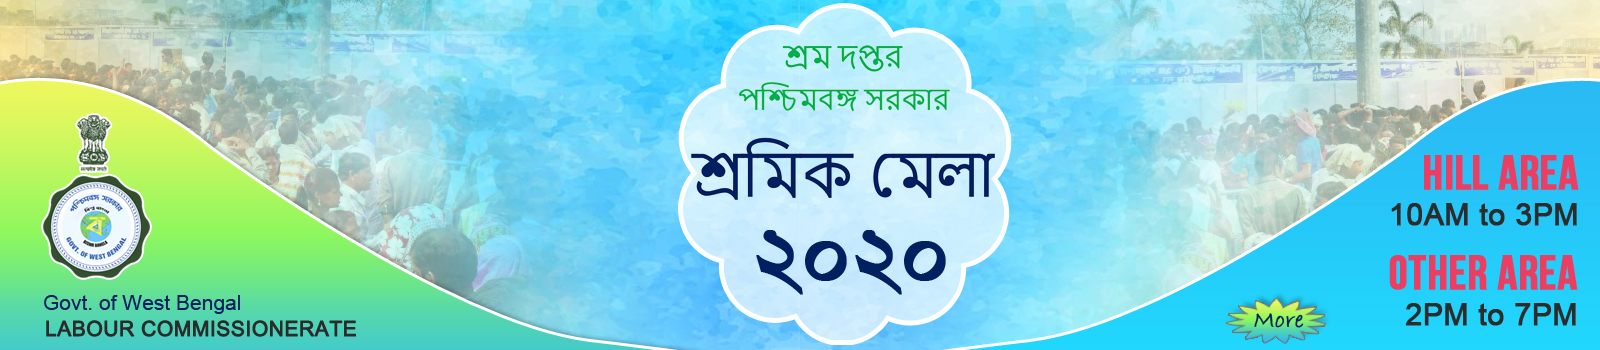 labour-commissionerate-west-bengal